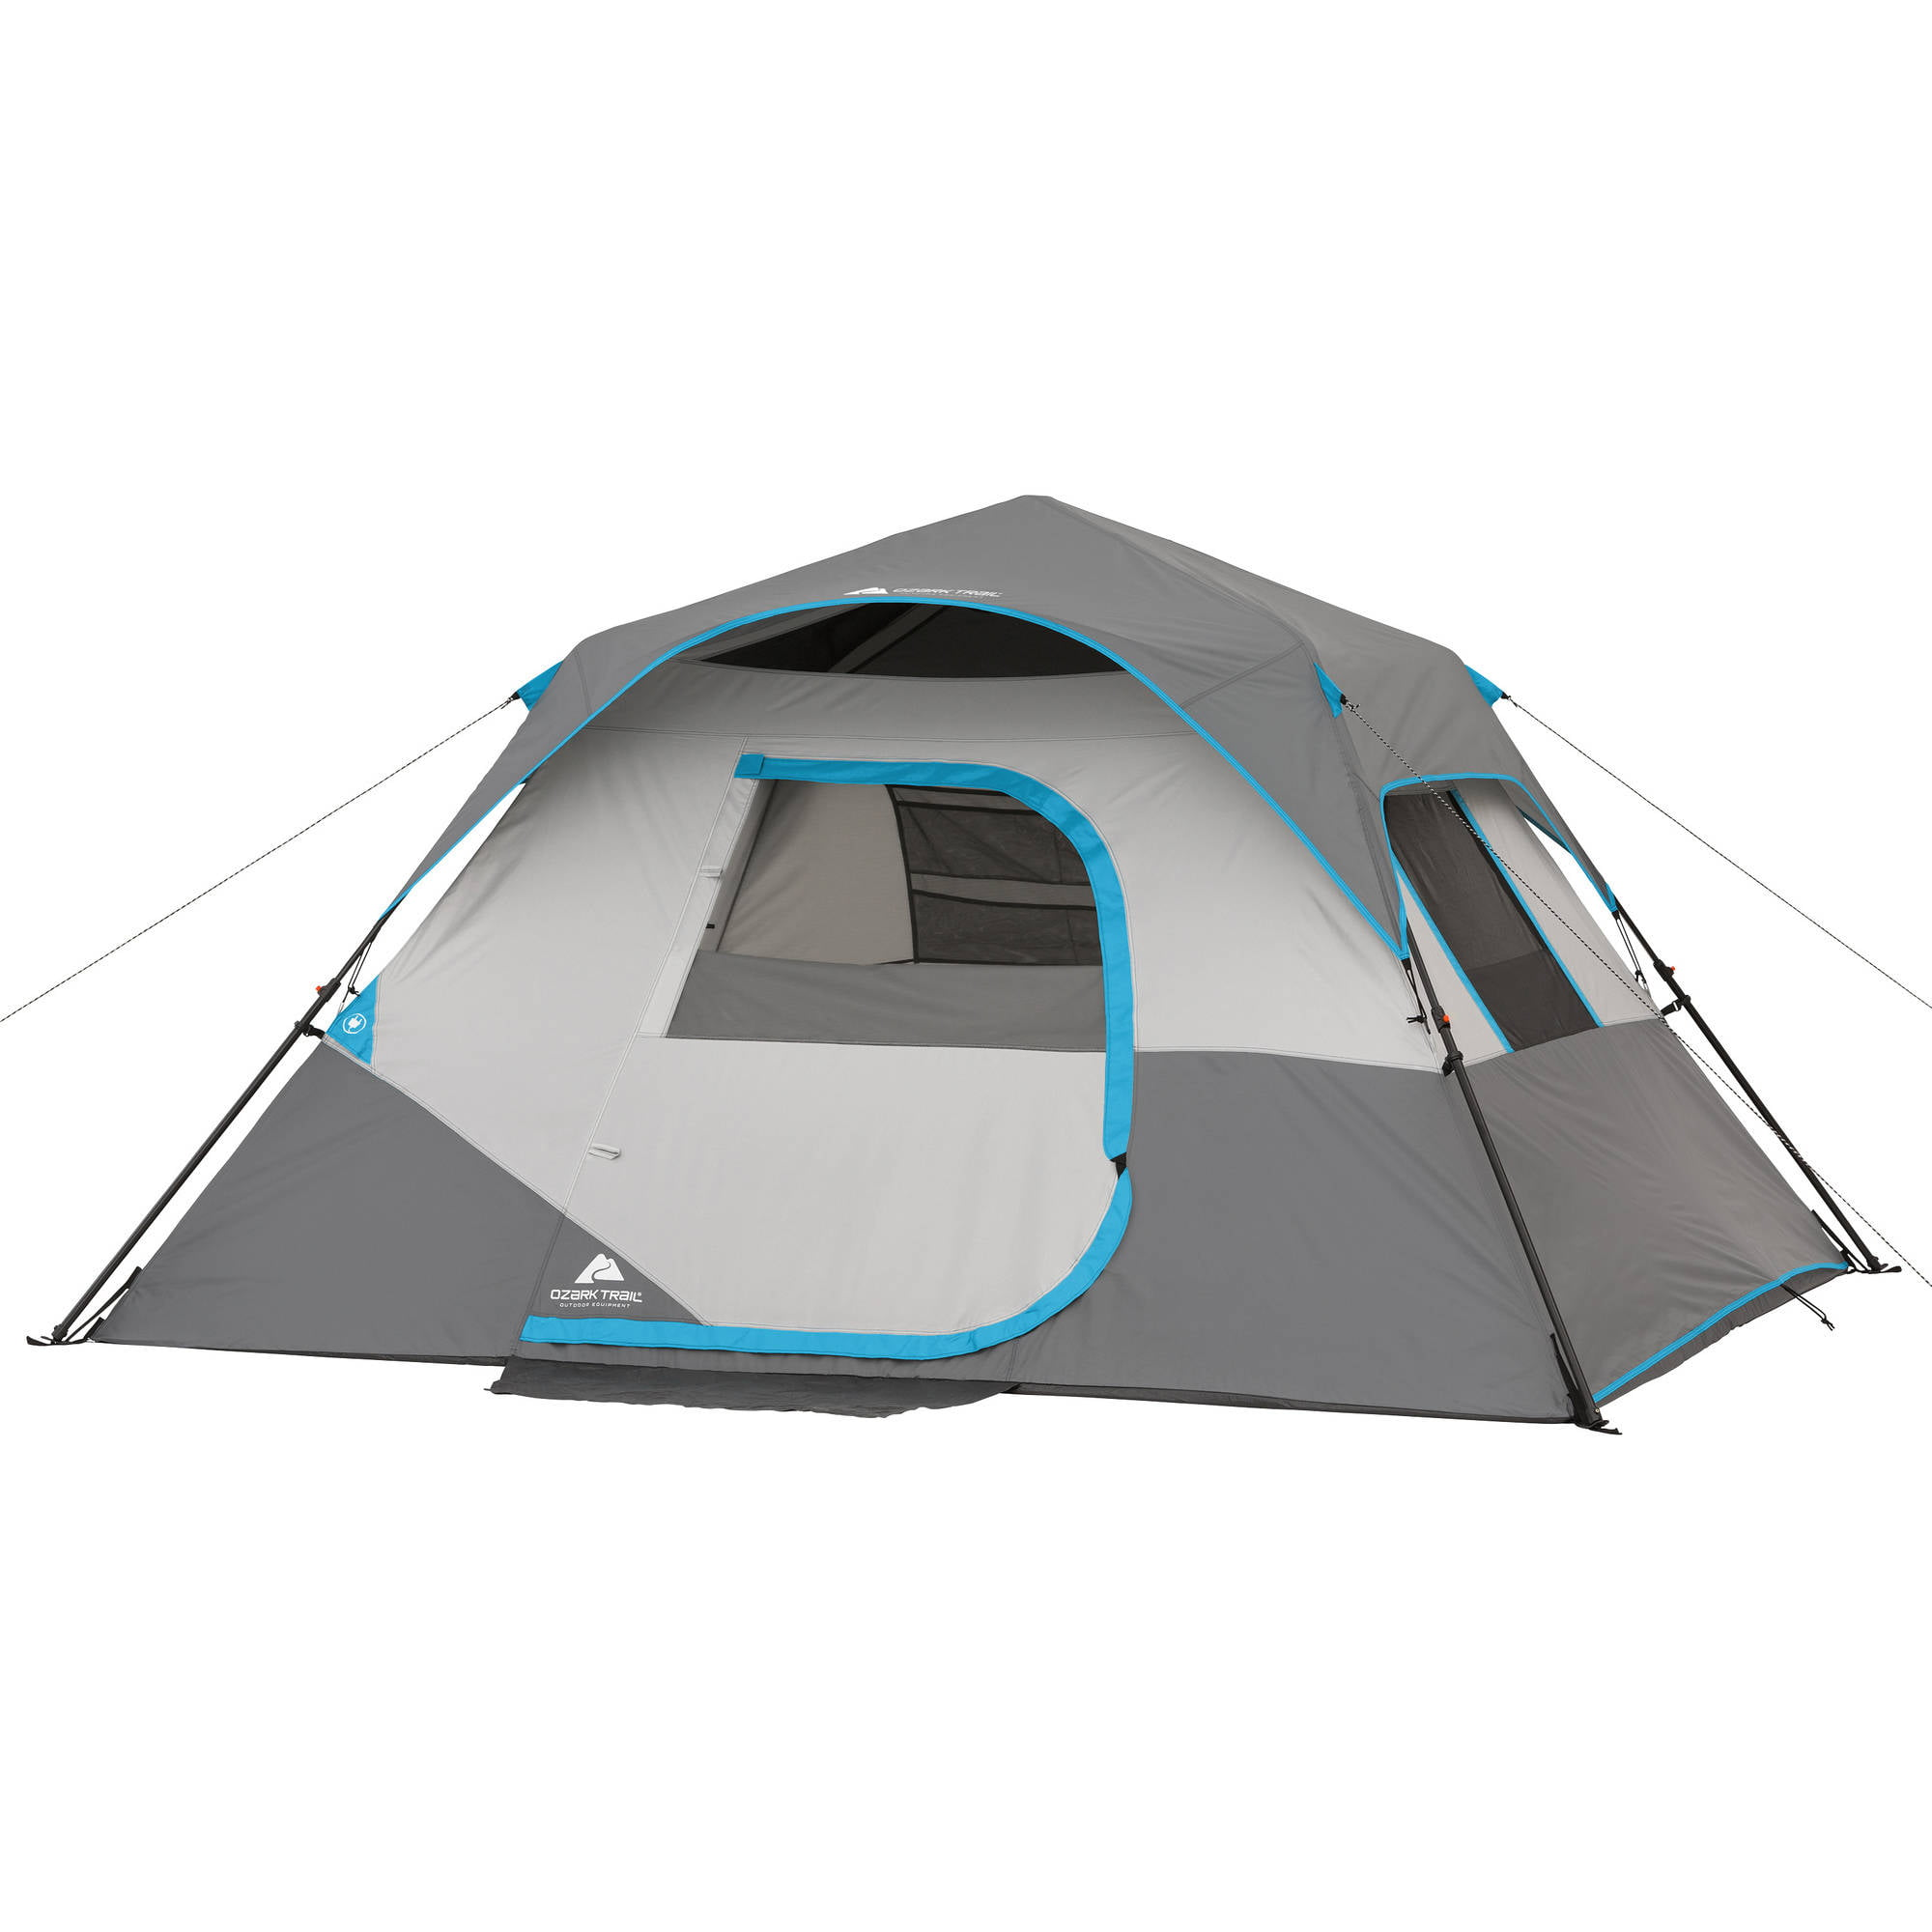 "Ozark Trail 10' x 9' x 66"" 6-Person Instant Cabin Tent by Bohemian Travel Gear Limited"